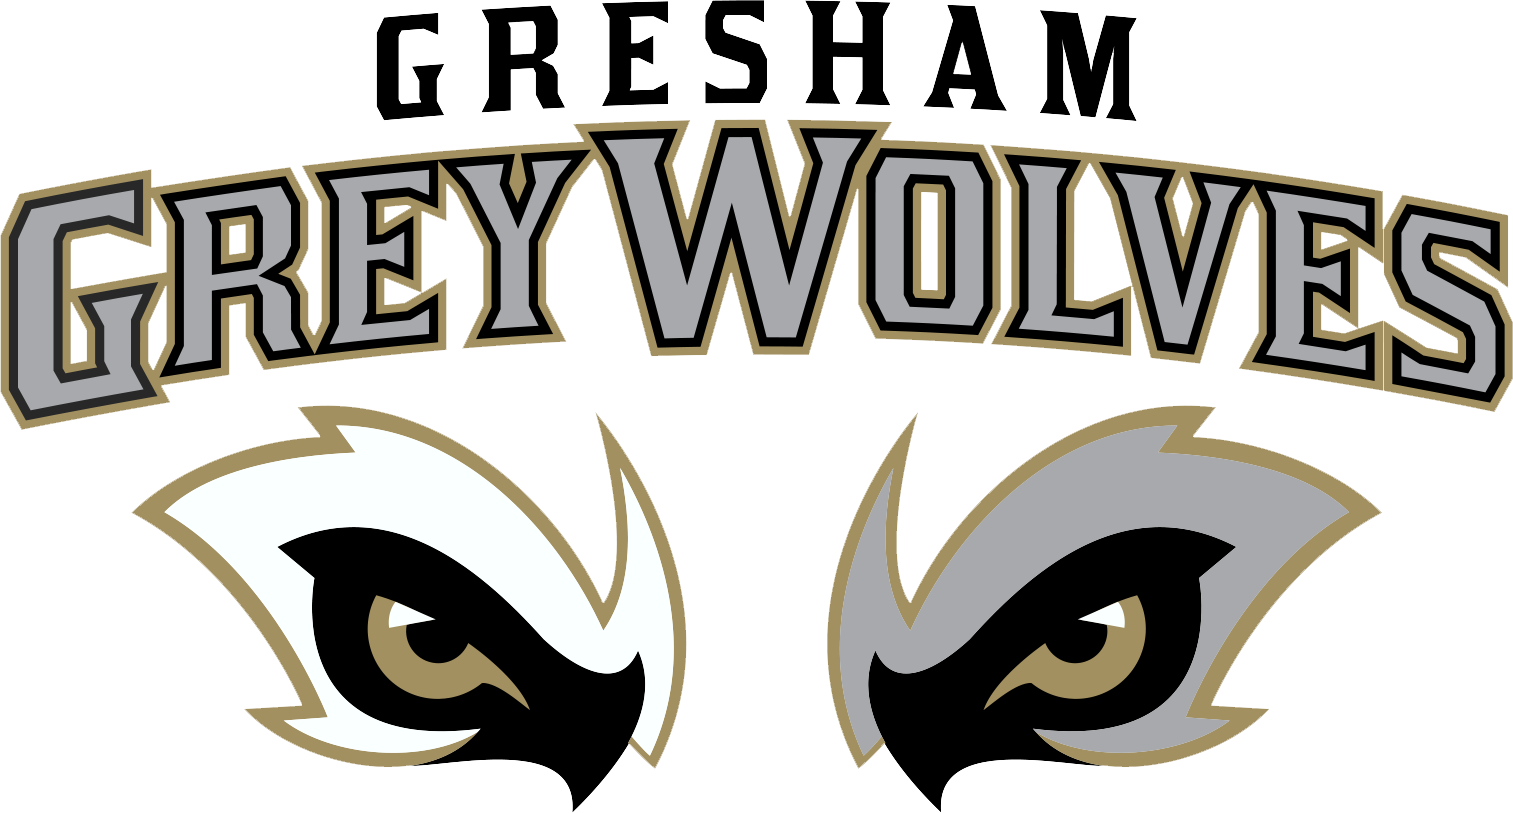 New WCL team to be named Gresham GreyWolves.